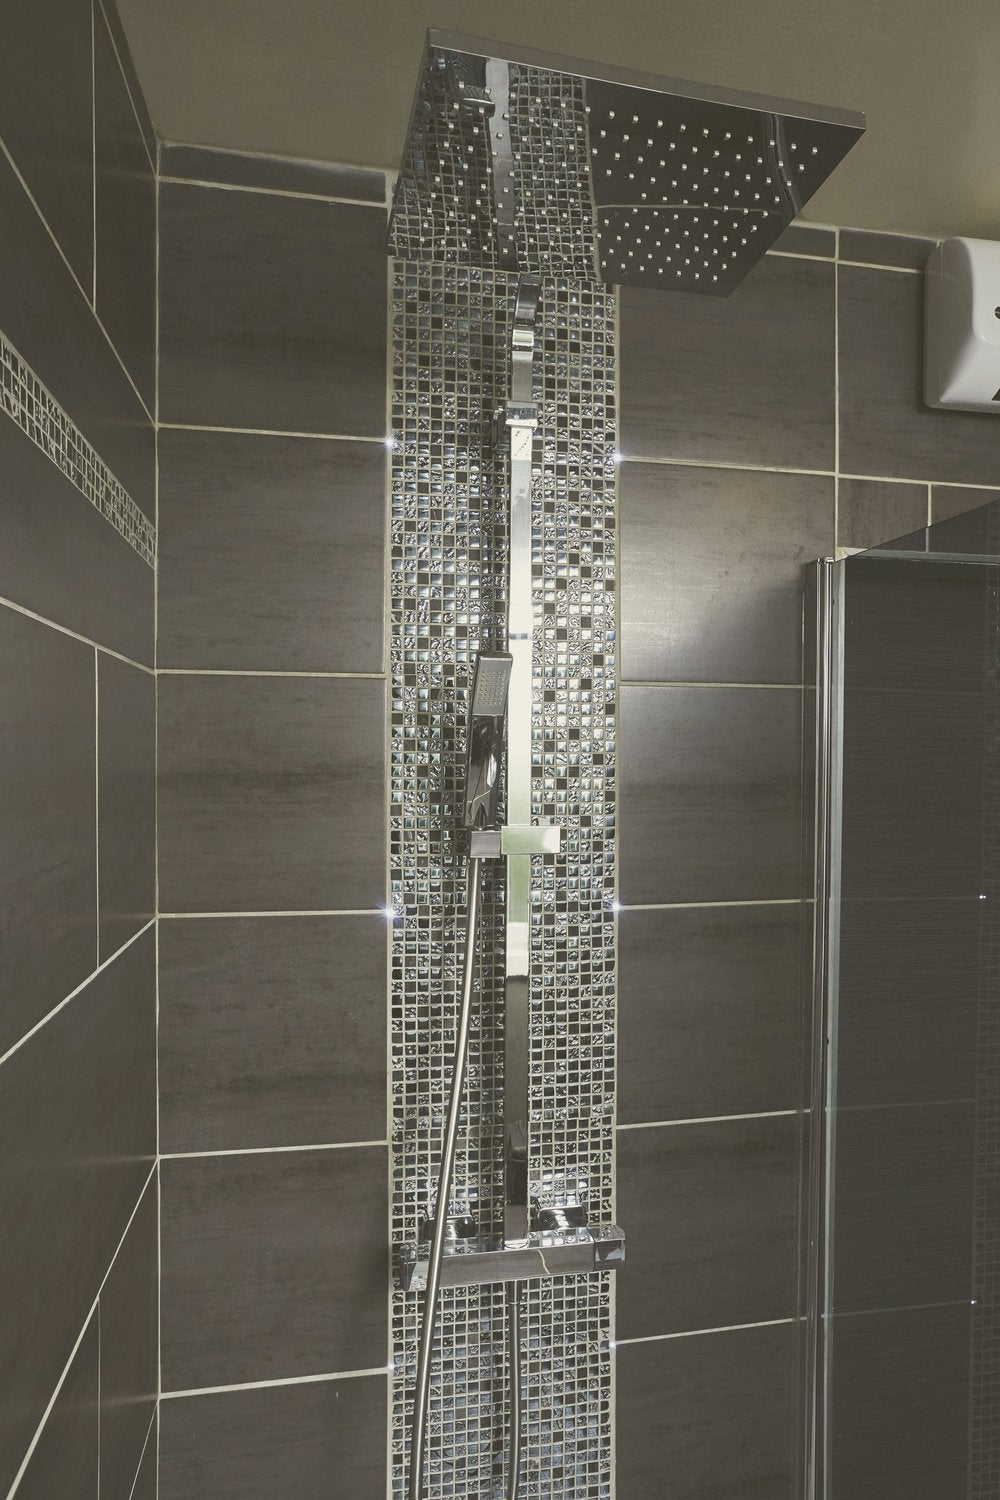 La douche l 39 italienne de magali blancafort leroy merlin for Idee carrelage douche